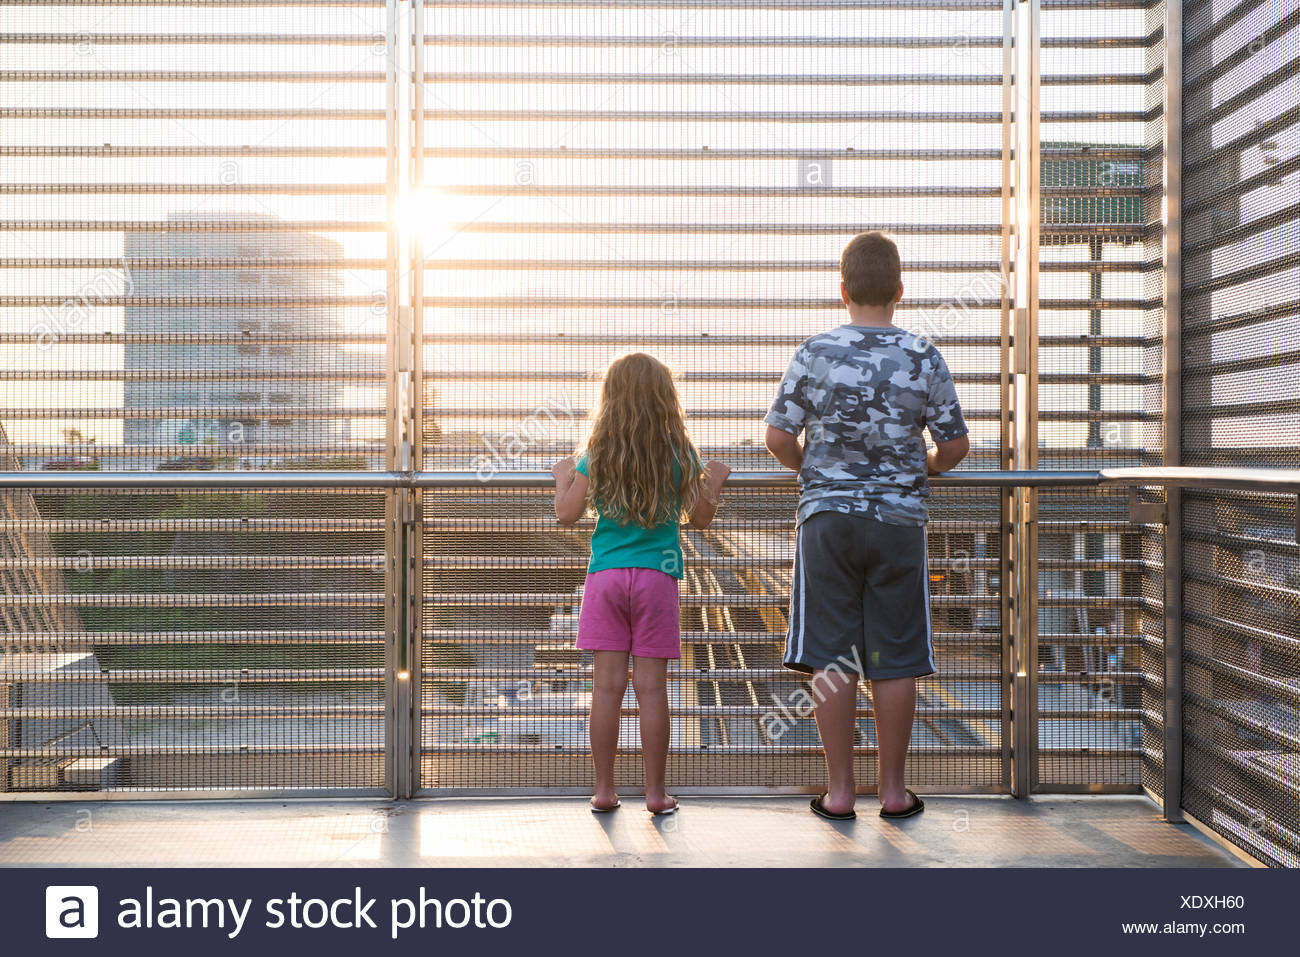 Two children looking down at train tracks at train station - Stock Image